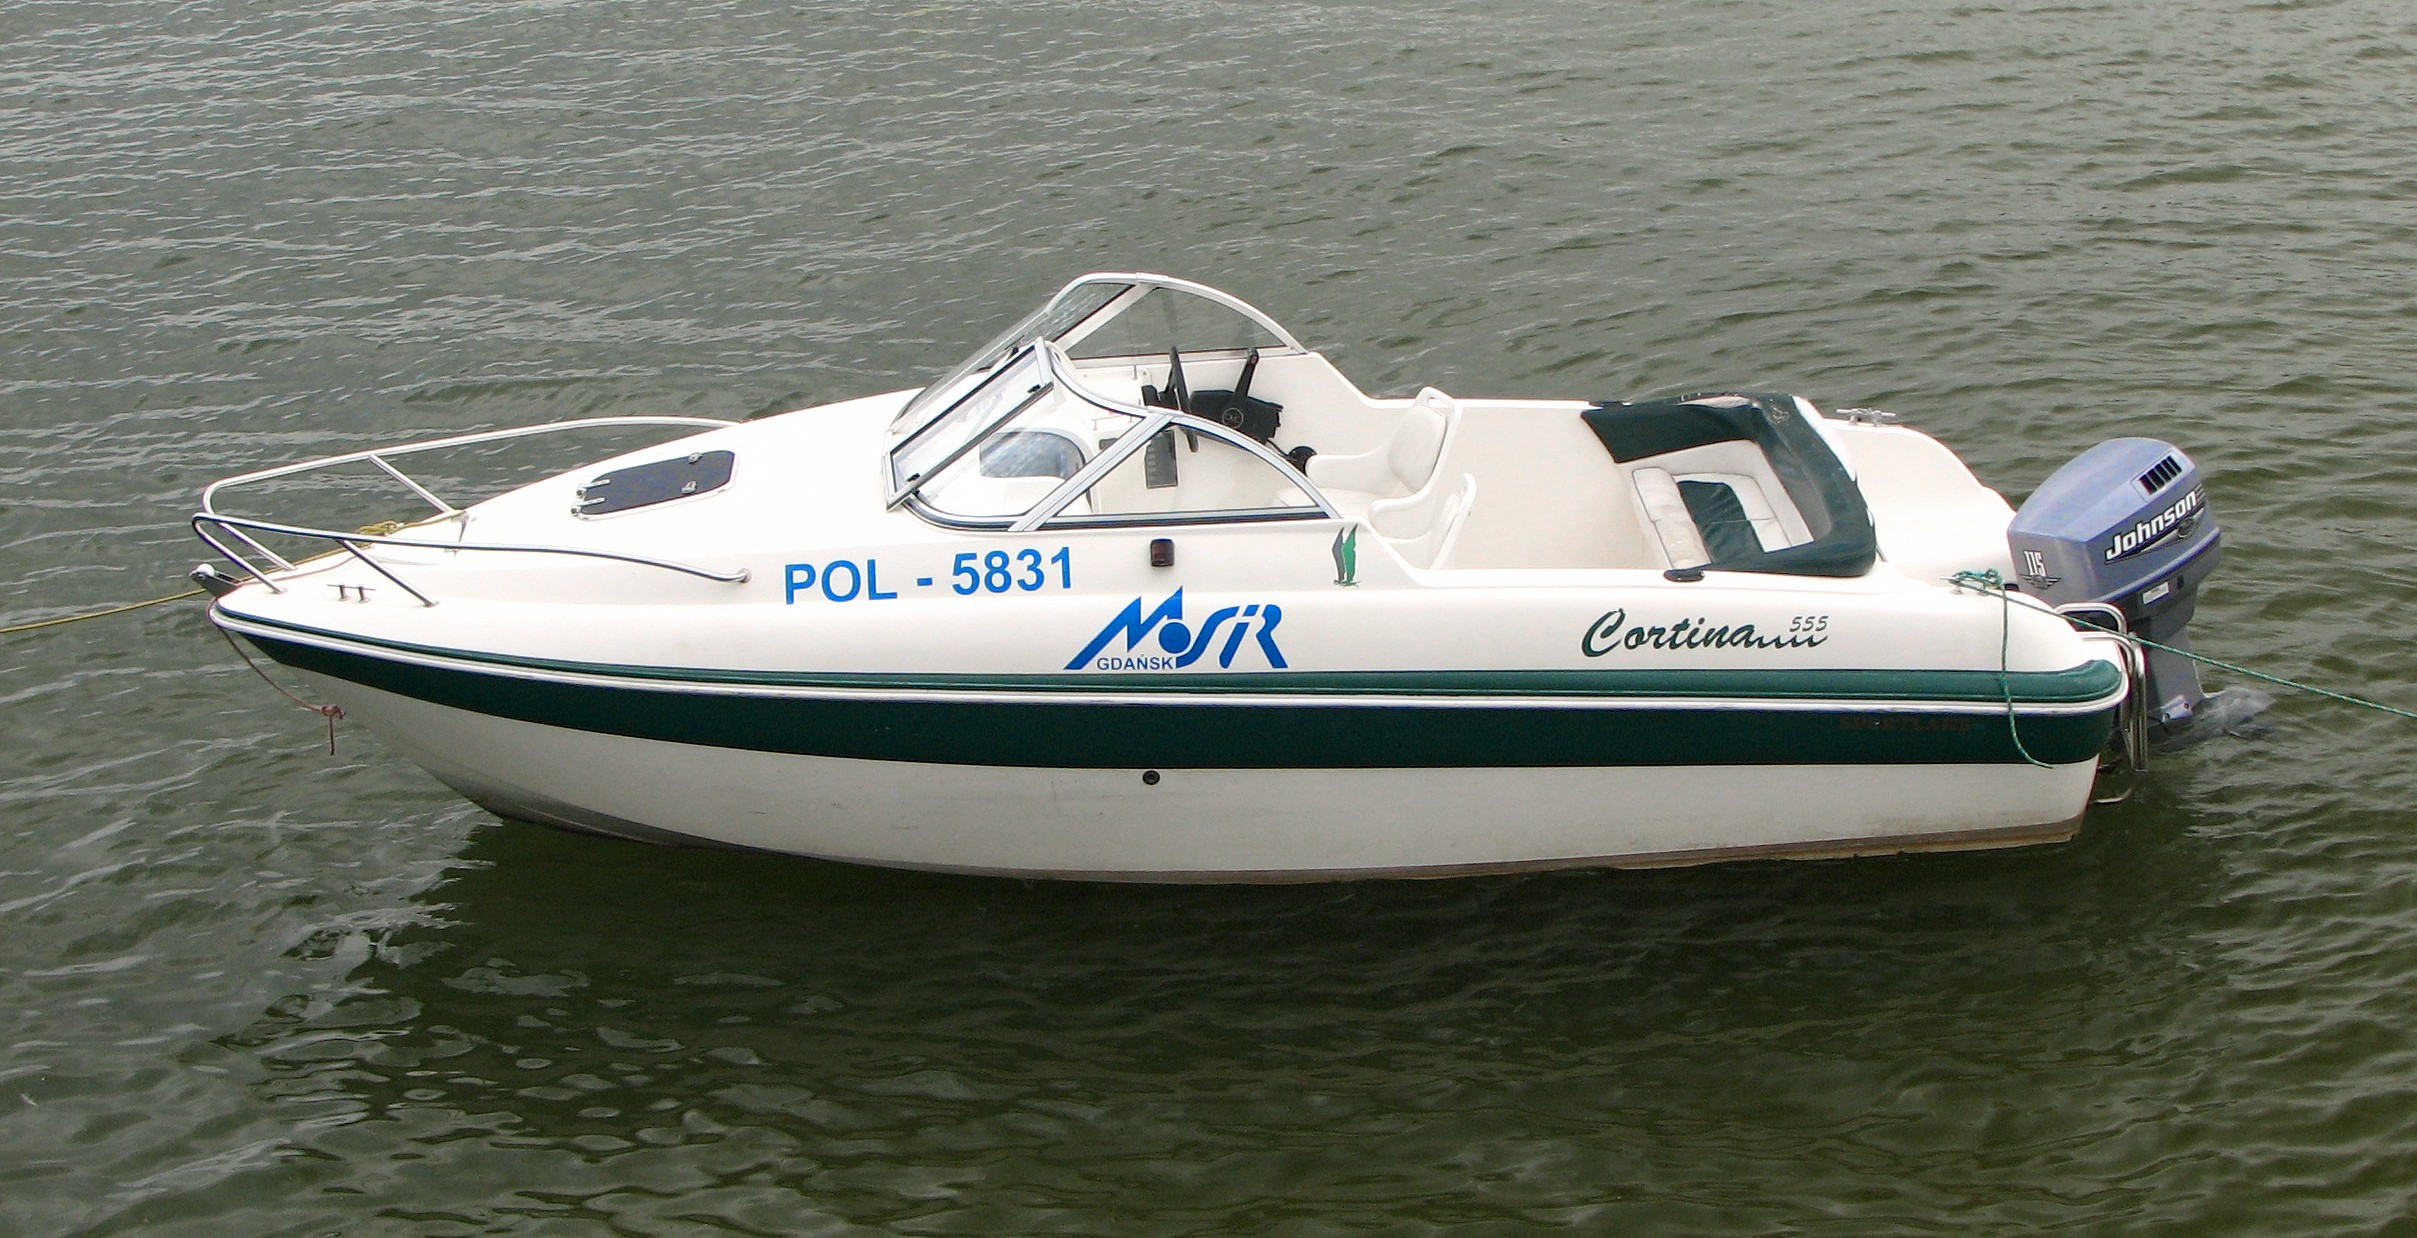 Boat Renewals January 1, 2019 through April 30, 2019